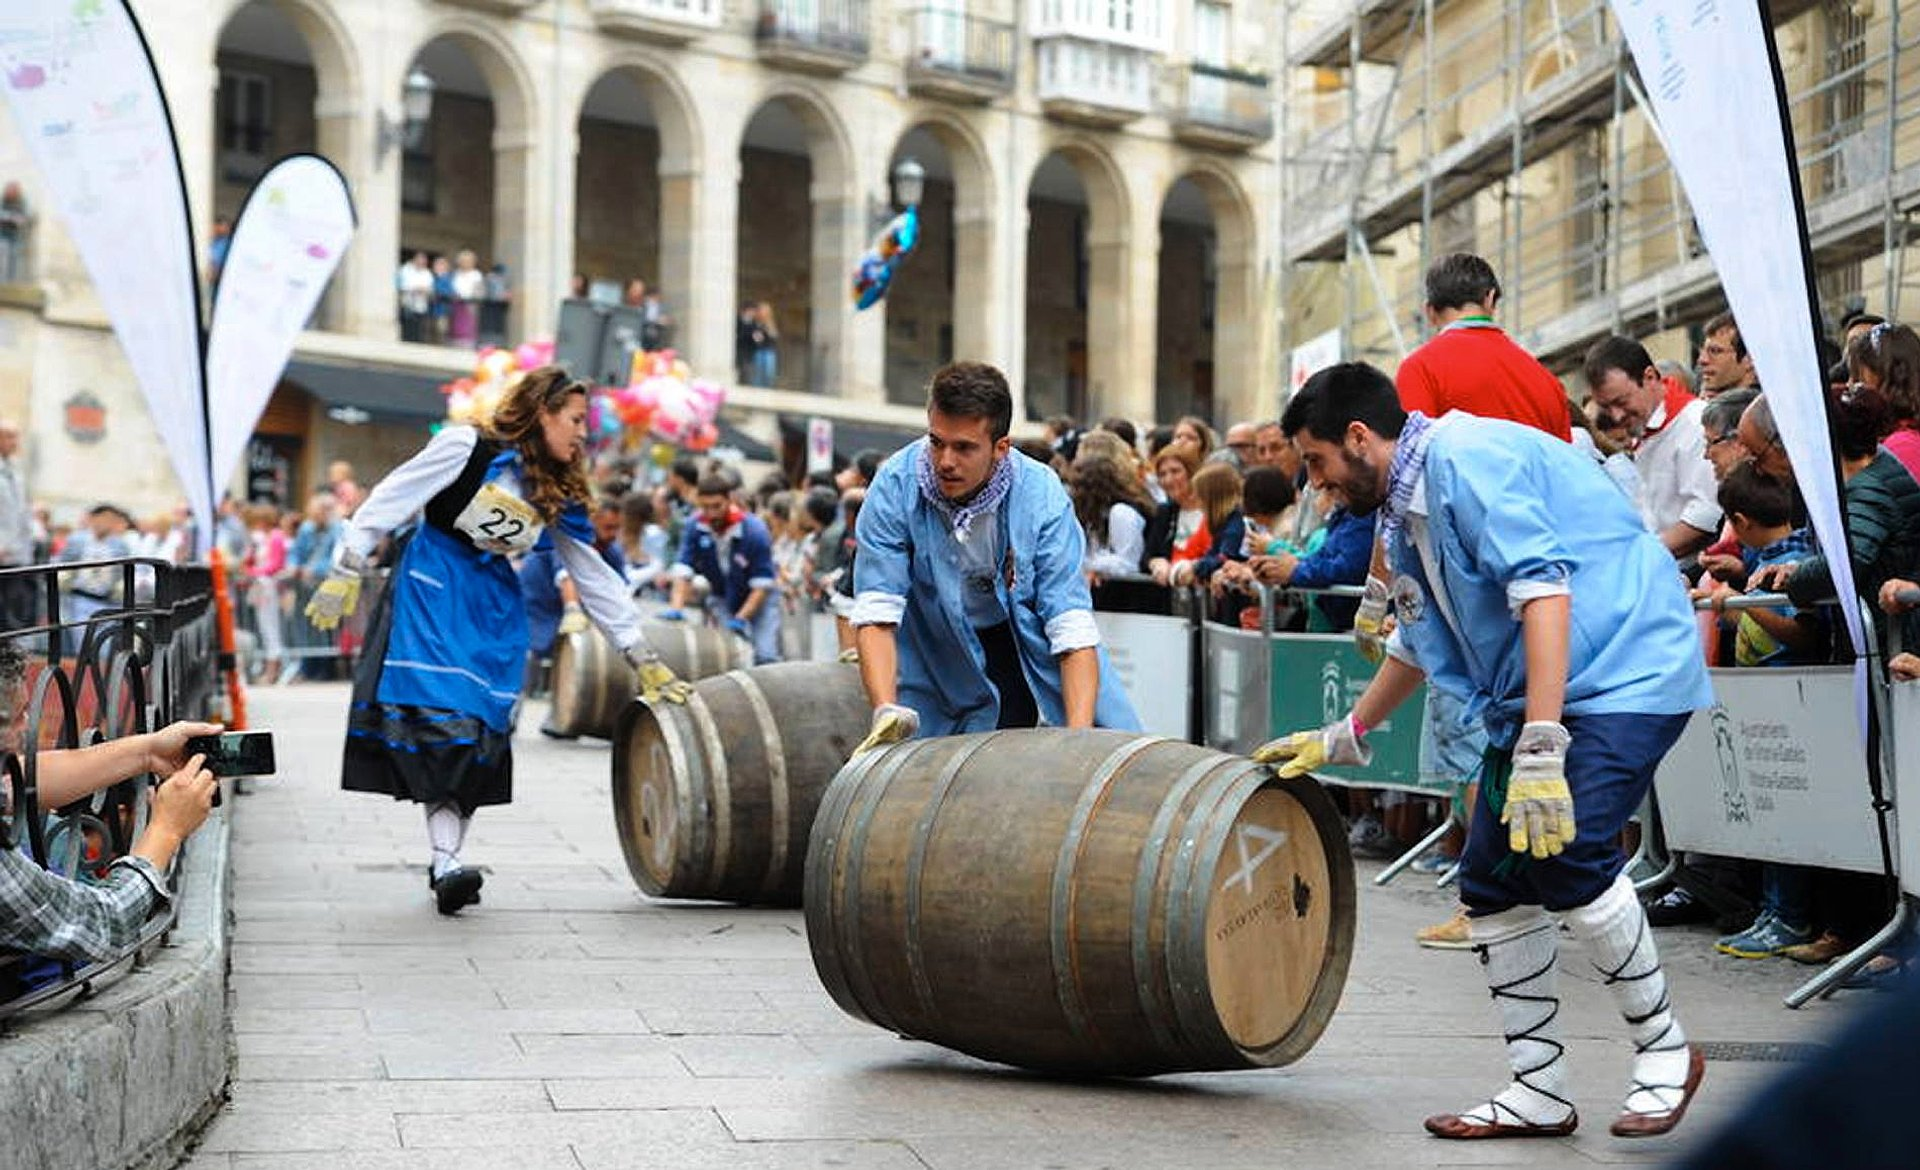 Best time for Fiestas de La Blanca & Celedón, Vitoria-Gasteiz in Basque Country 2020